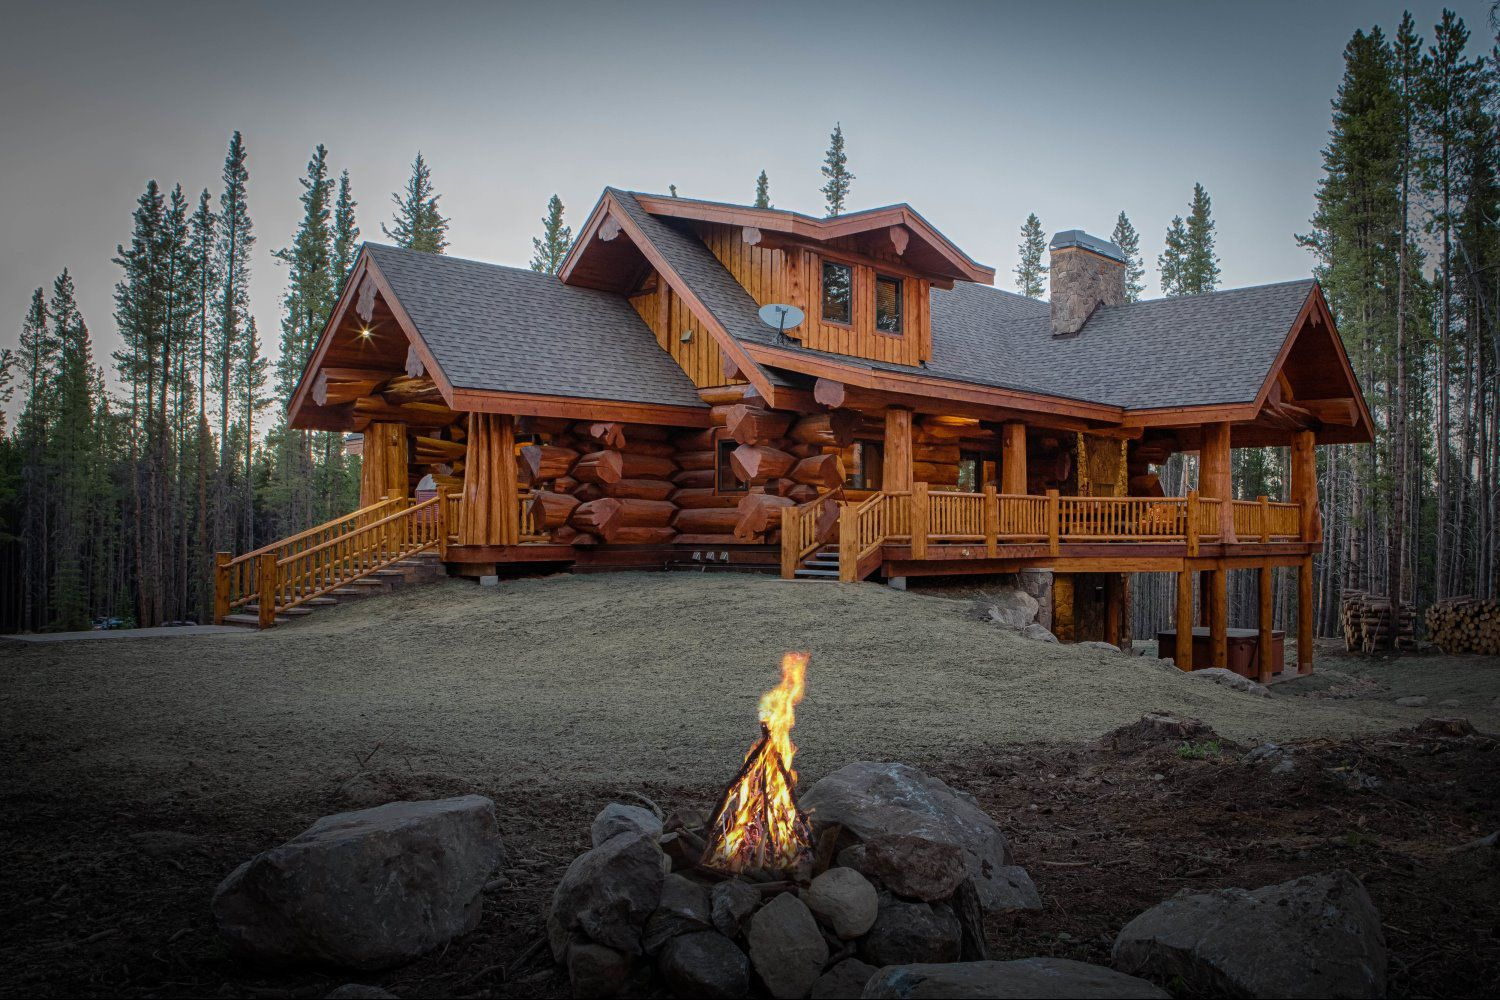 Mountain Log Homes Of Colorado, Inc. Provides Our Clients With A Unique  Business Model That Combines Years Of High Country Custom Home Building  Expertise ...